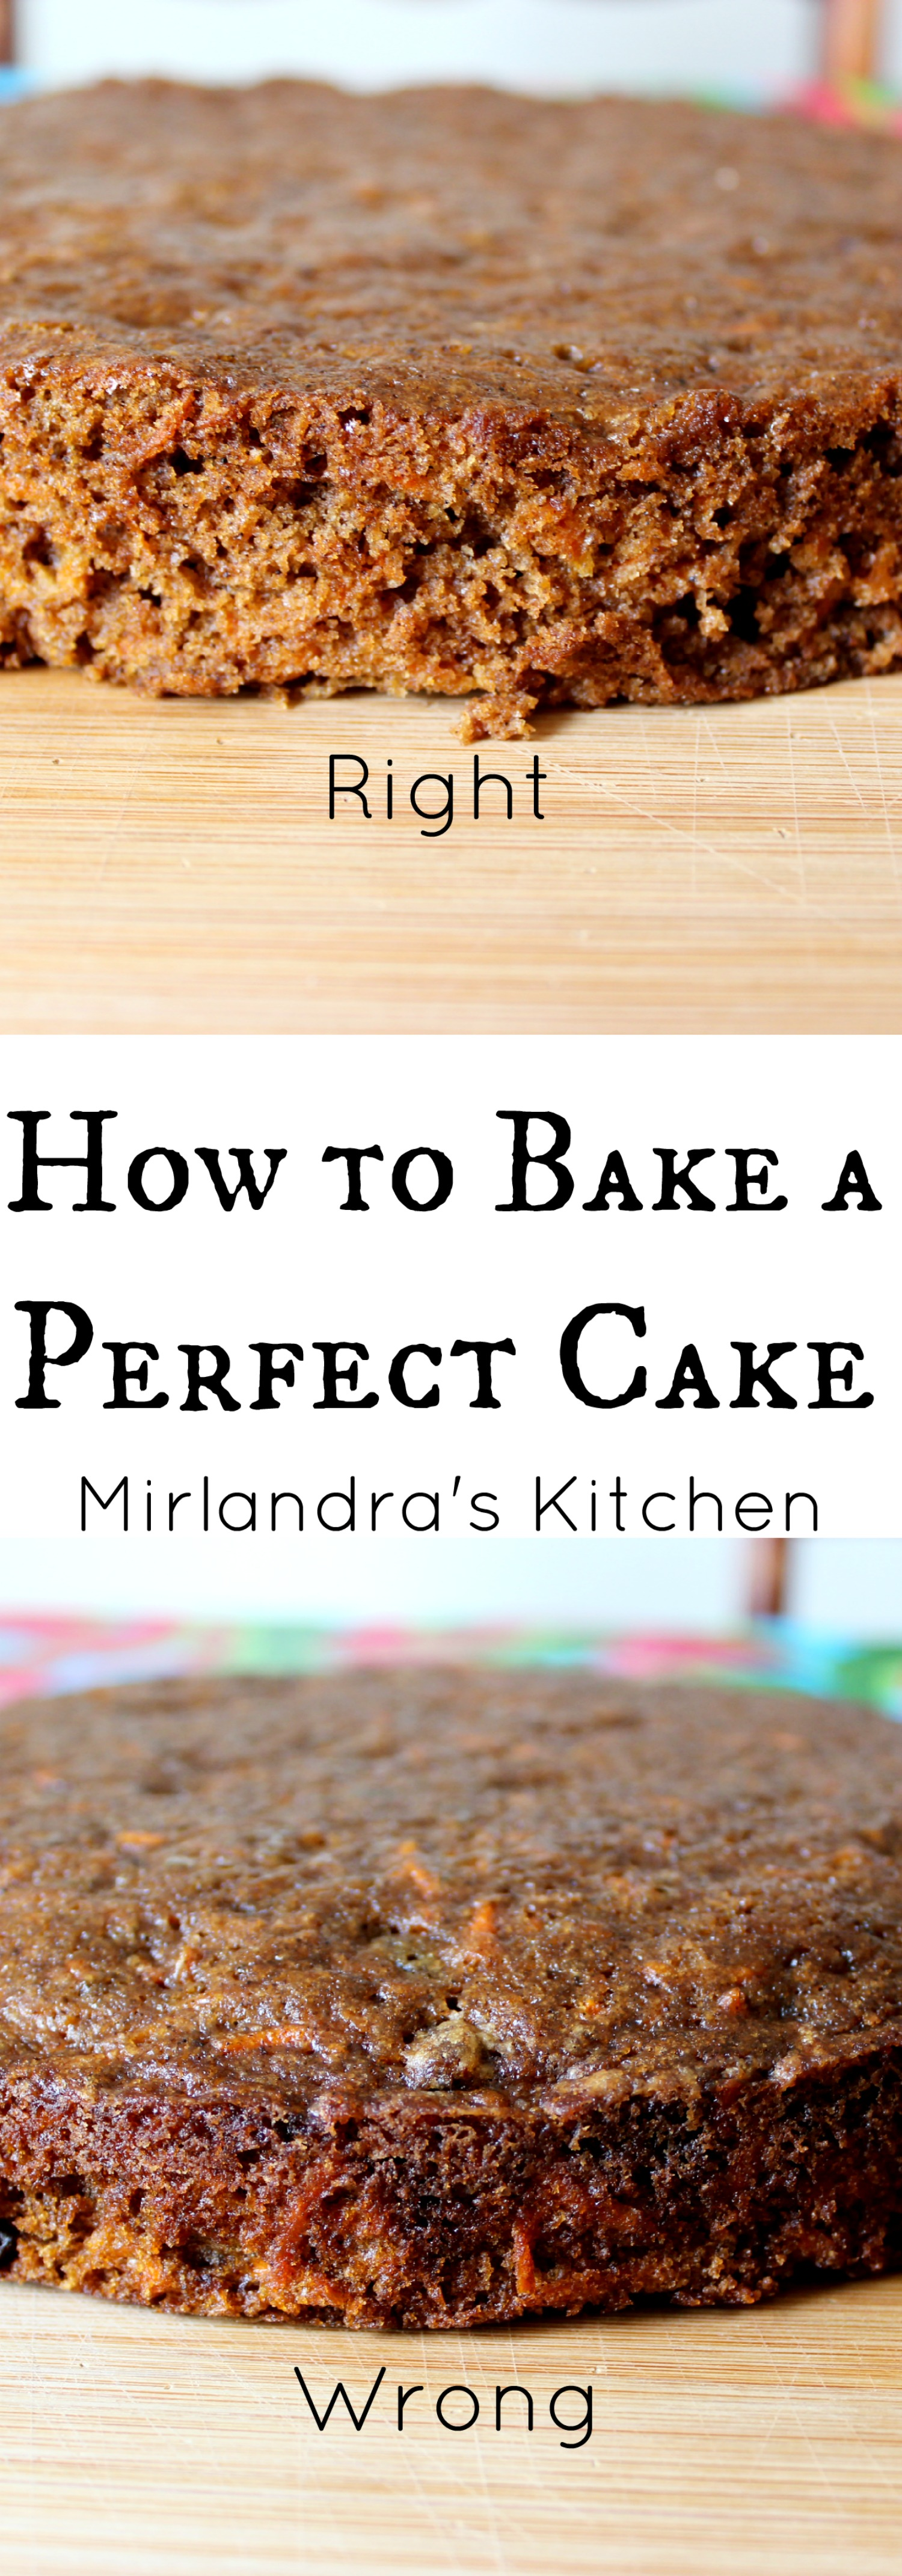 How To Bake A Perfect Cake Mirlandras Kitchen